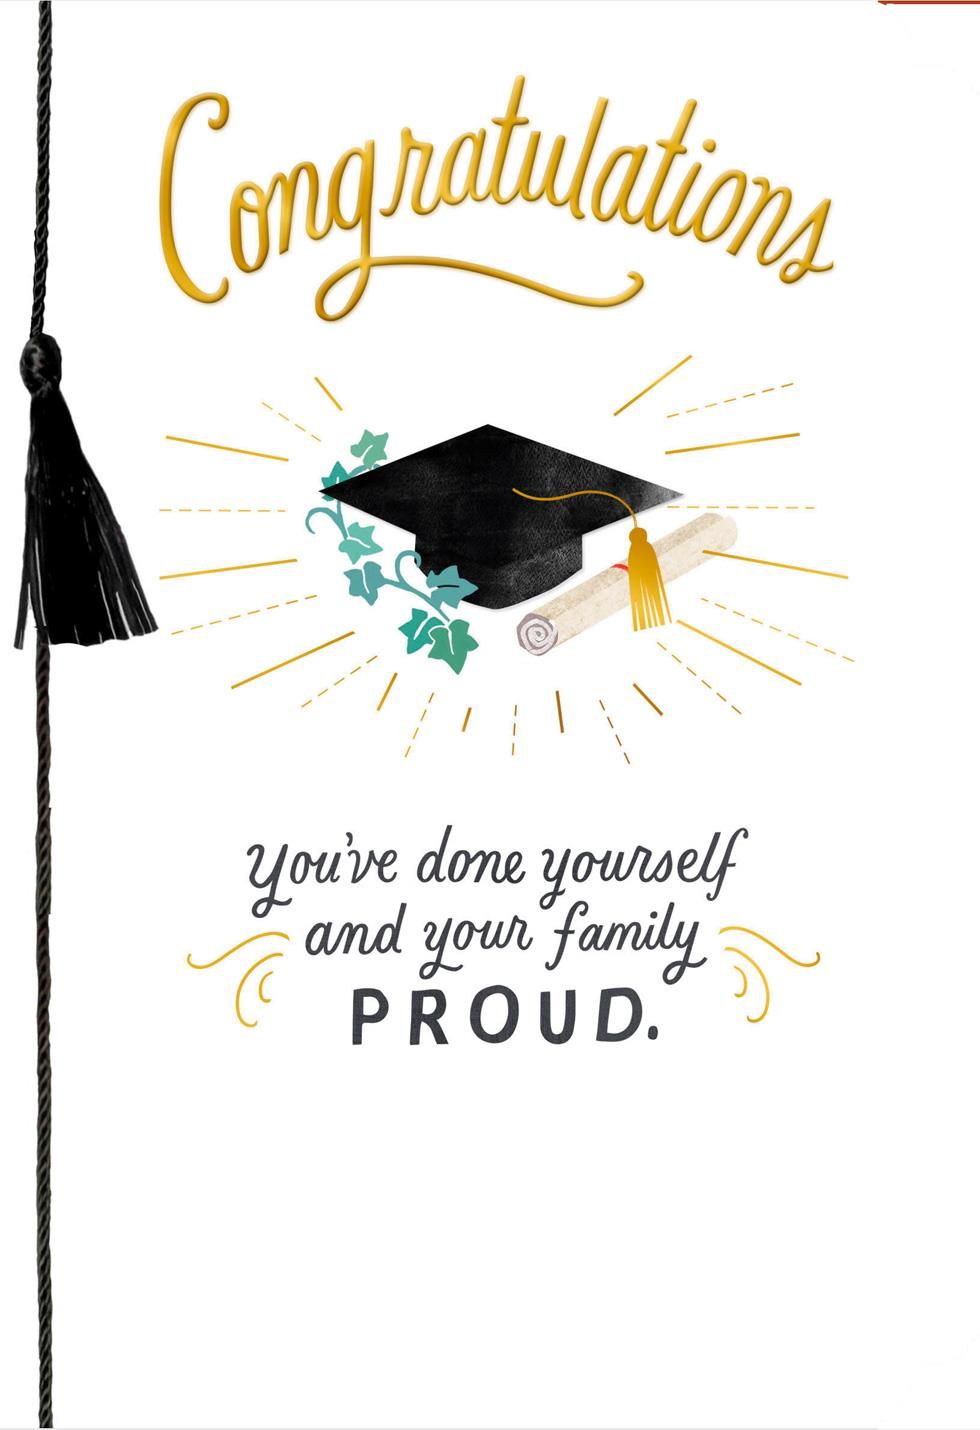 You Make The Family Proud Graduation Card Greeting Cards